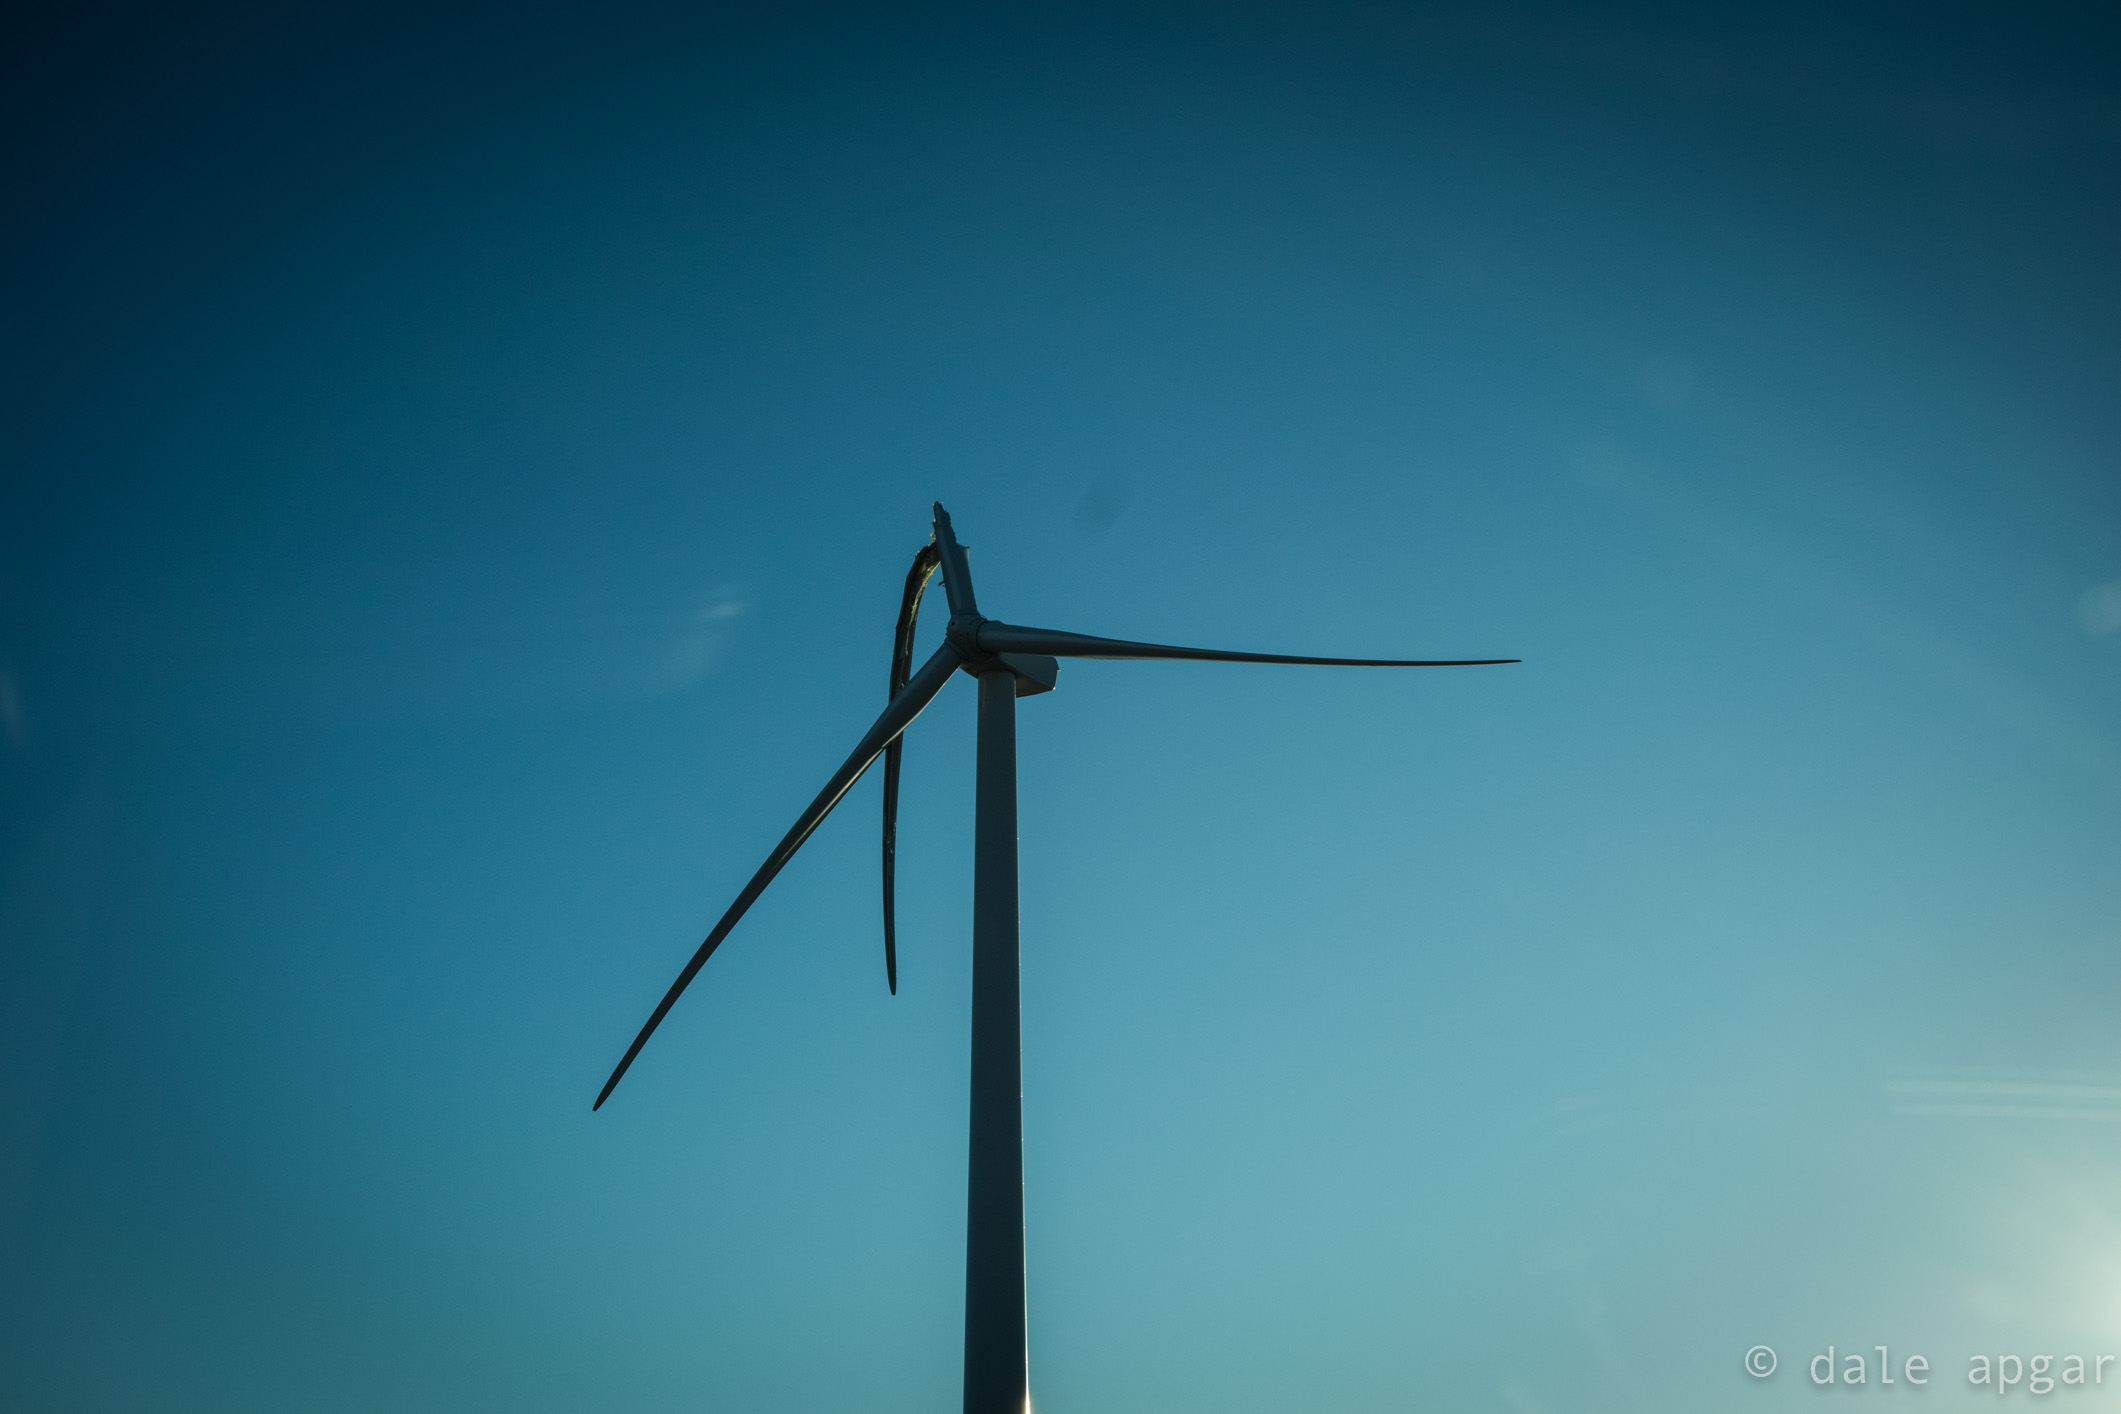 ...and what wind turbines shouldn't look like